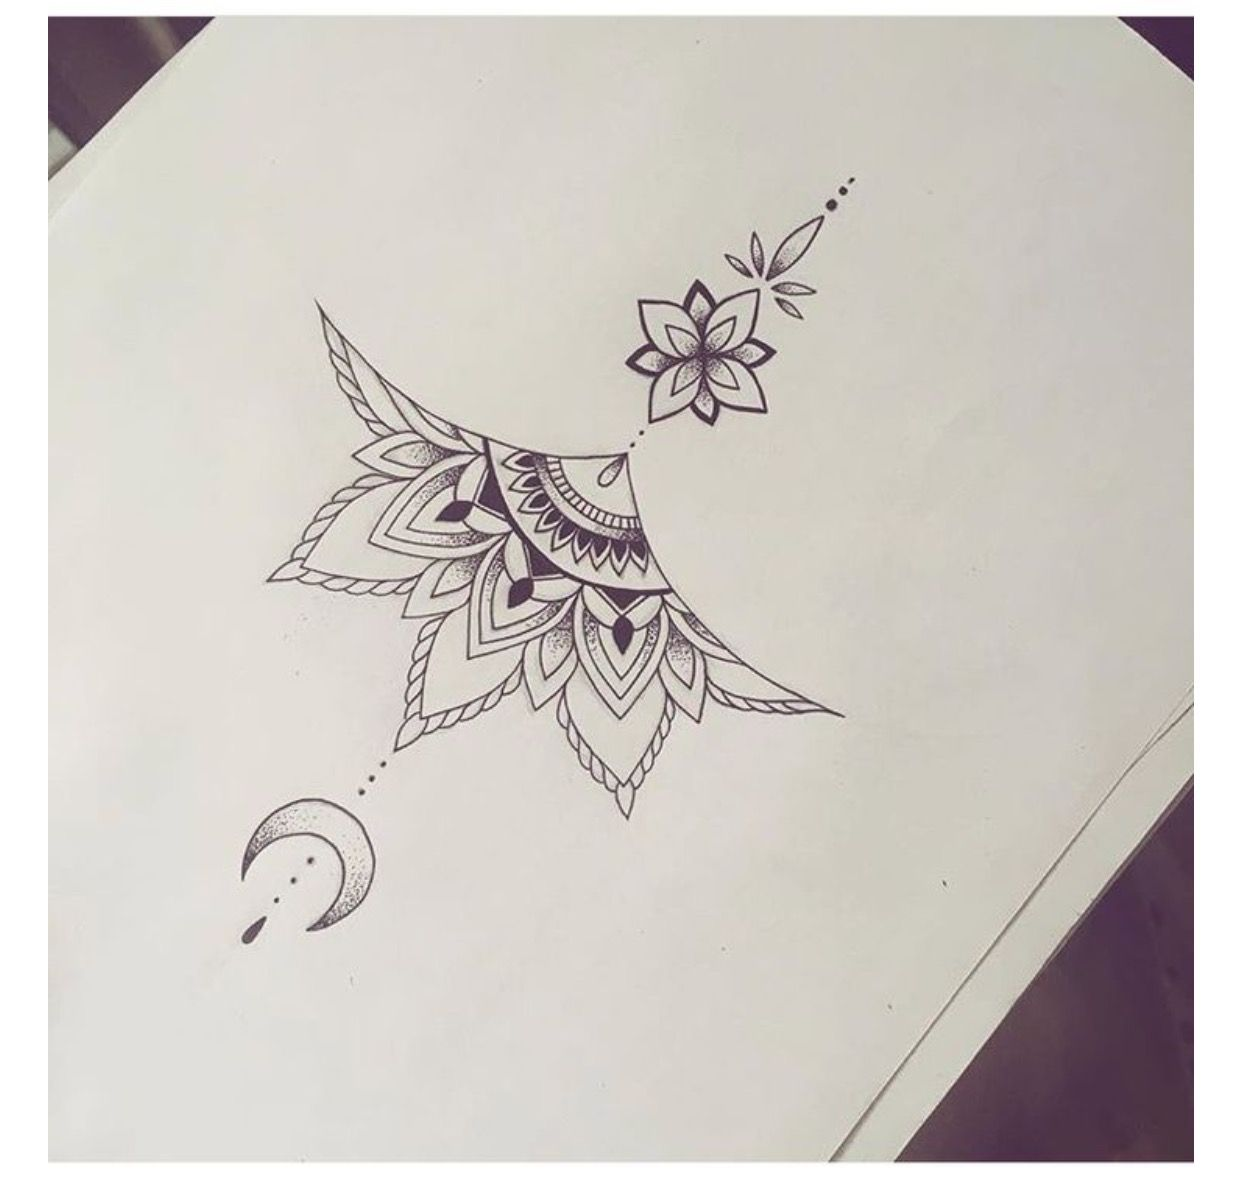 Pin By Radelicious On Tattoo Ideas Chest Tattoos For Women Inspirational Tattoos Sternum Tattoo Design